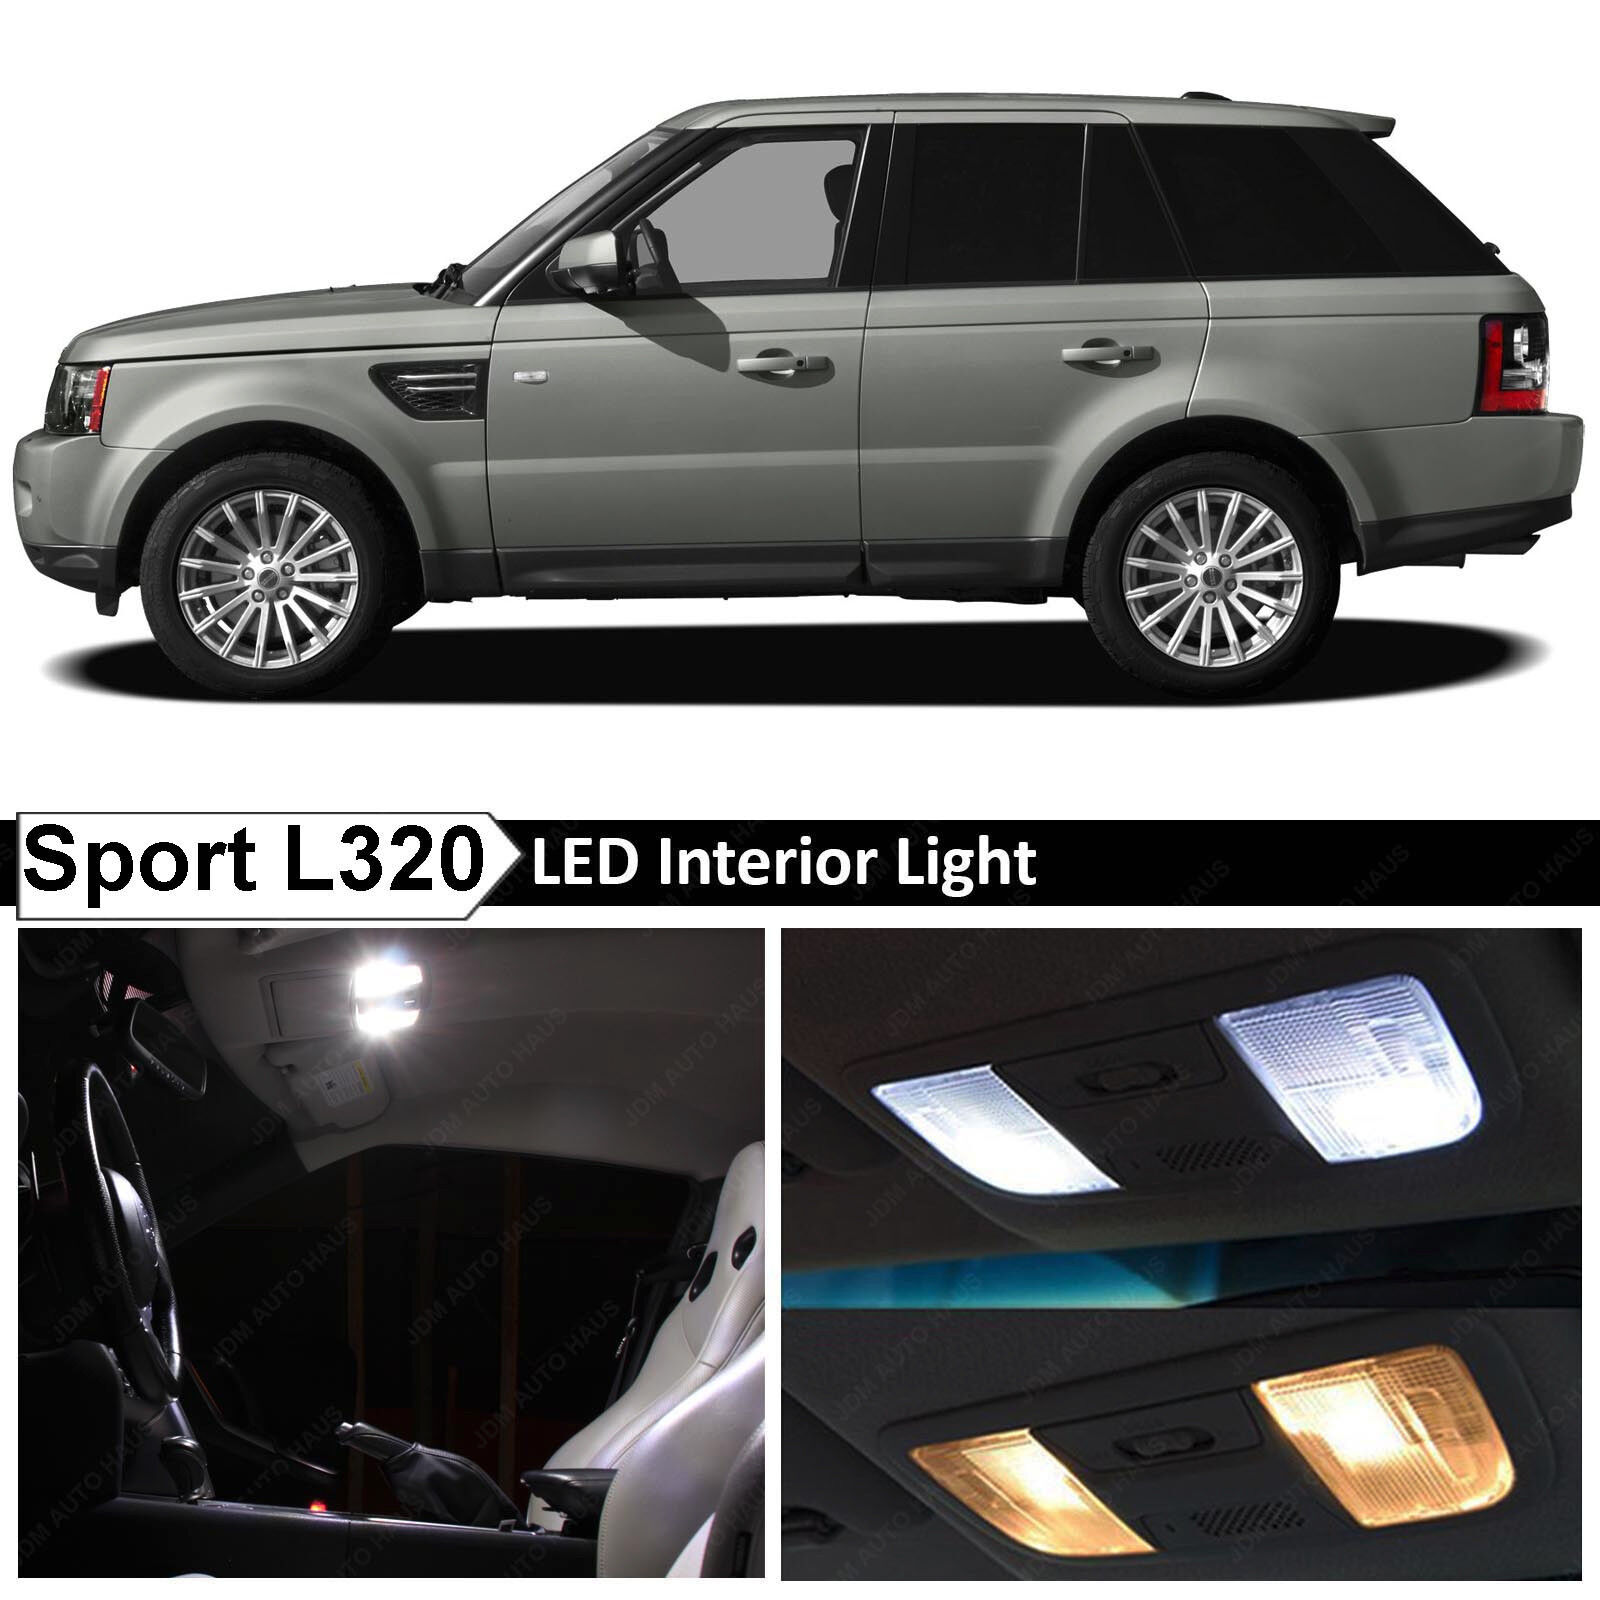 Range Rover Sport 2005 2013: 18x White LED Lights Interior Package For 2005-2013 Range